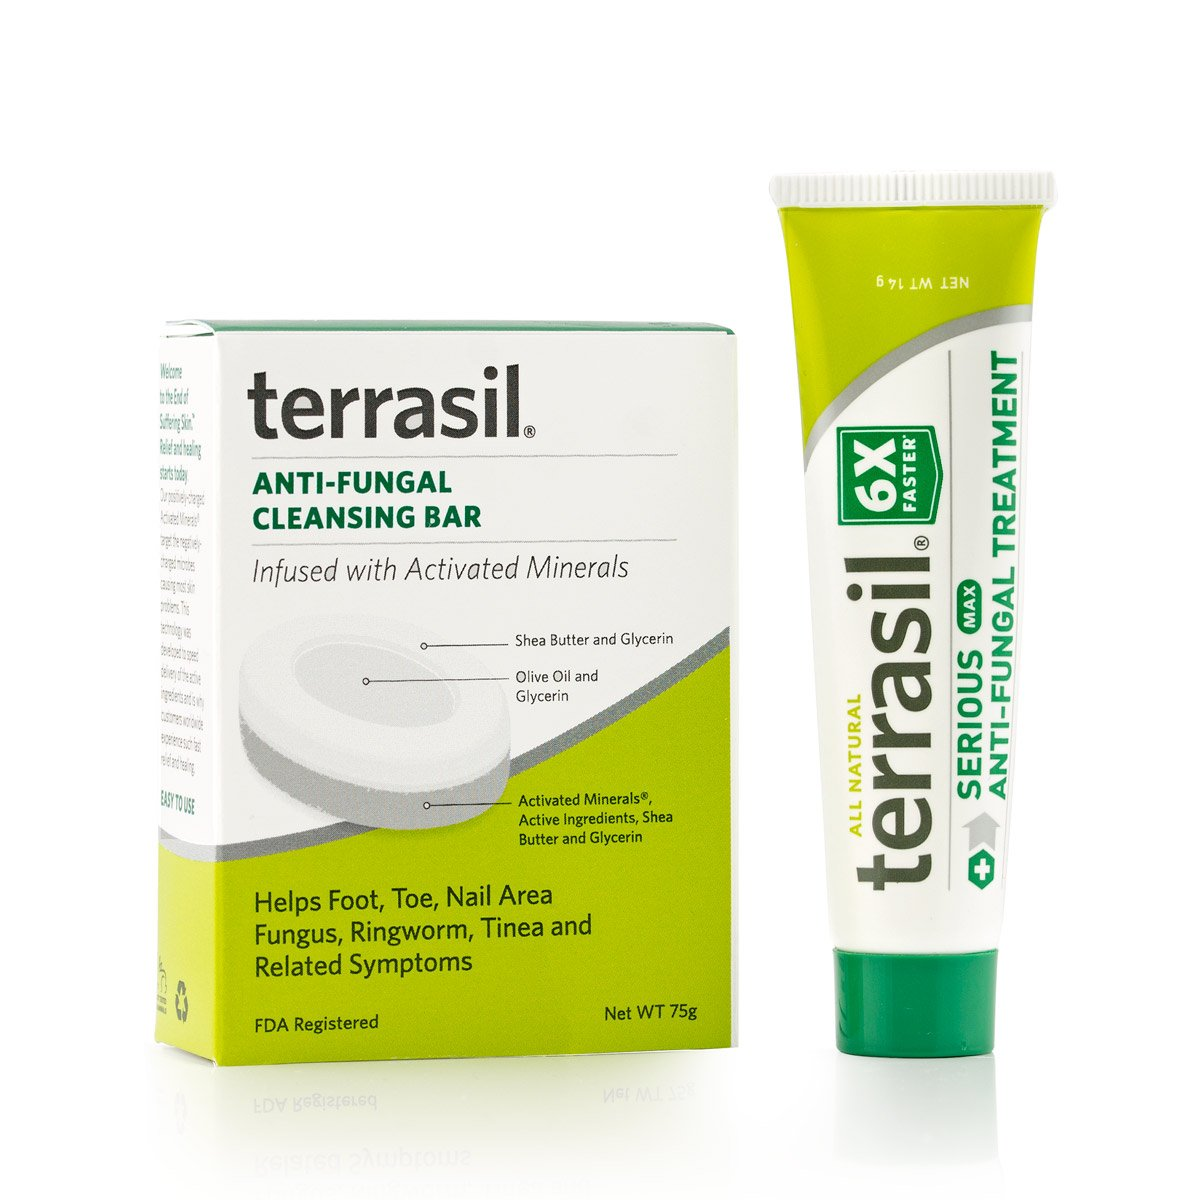 terrasil® Anti-fungal Treatment MAX + Anti-fungal Cleansing Soap - 6X Faster Doctor Recommended 100% Guaranteed All-Natural Soothing Clotrimazole OTC-Registered - Complete Treatment- 14g + Bar by Aidance Skincare & Topical Solutions